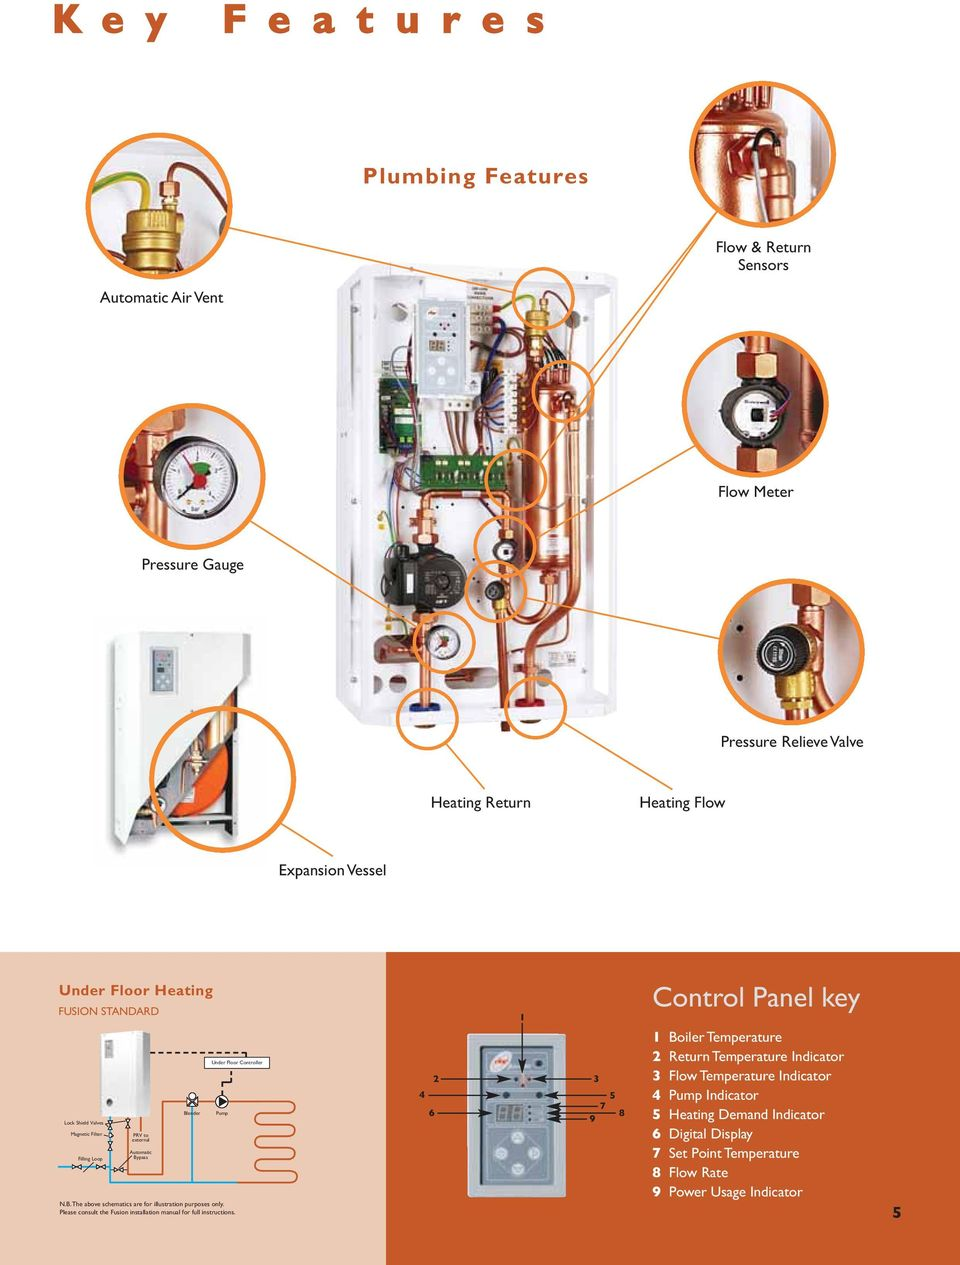 The Fusion Range Of Electric Boilers Pdf Amptec Boiler Wiring Diagram Please Consult Installation Manual For Full Instructions